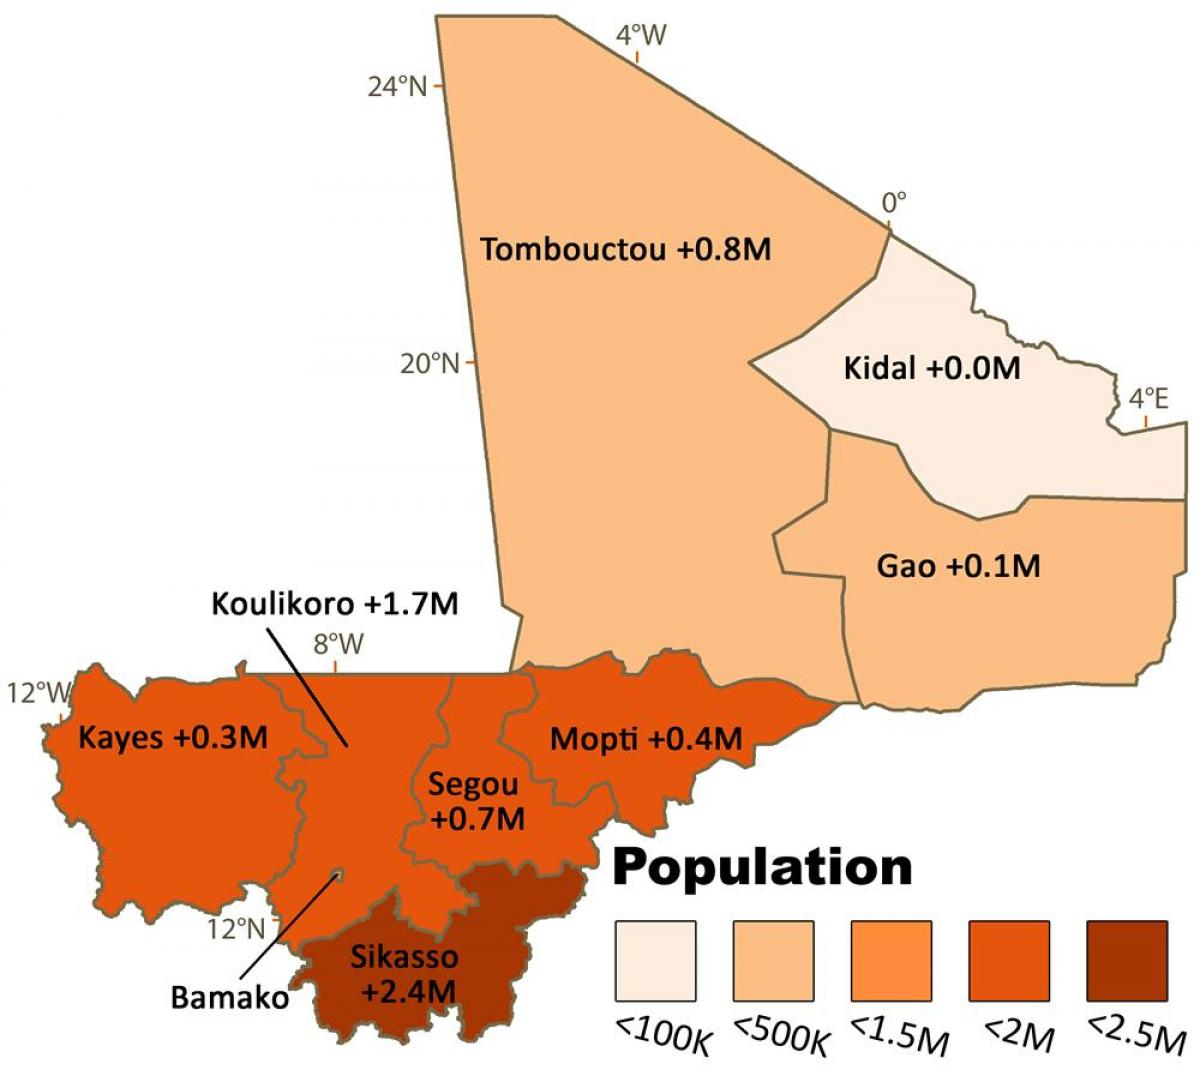 Map of Mali population